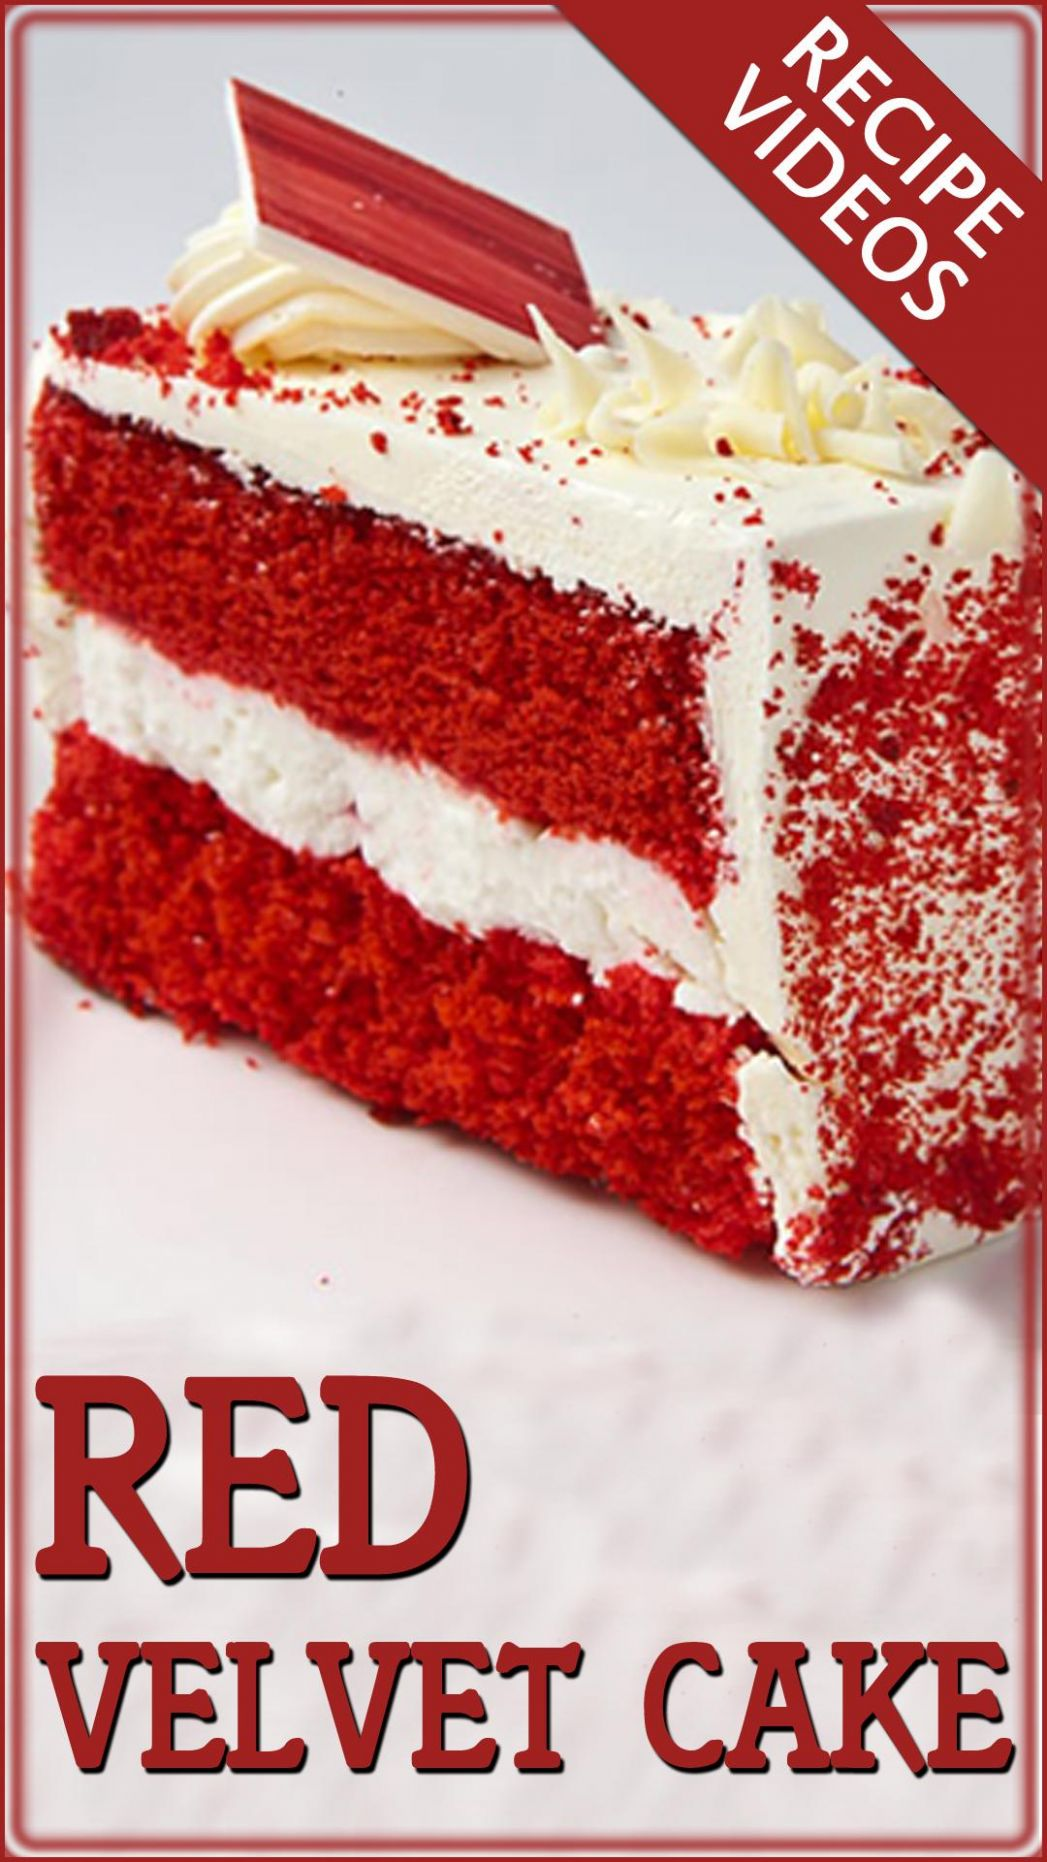 Red Velvet Cake Recipe für Android - APK herunterladen - Cake Recipes Malayalam Video